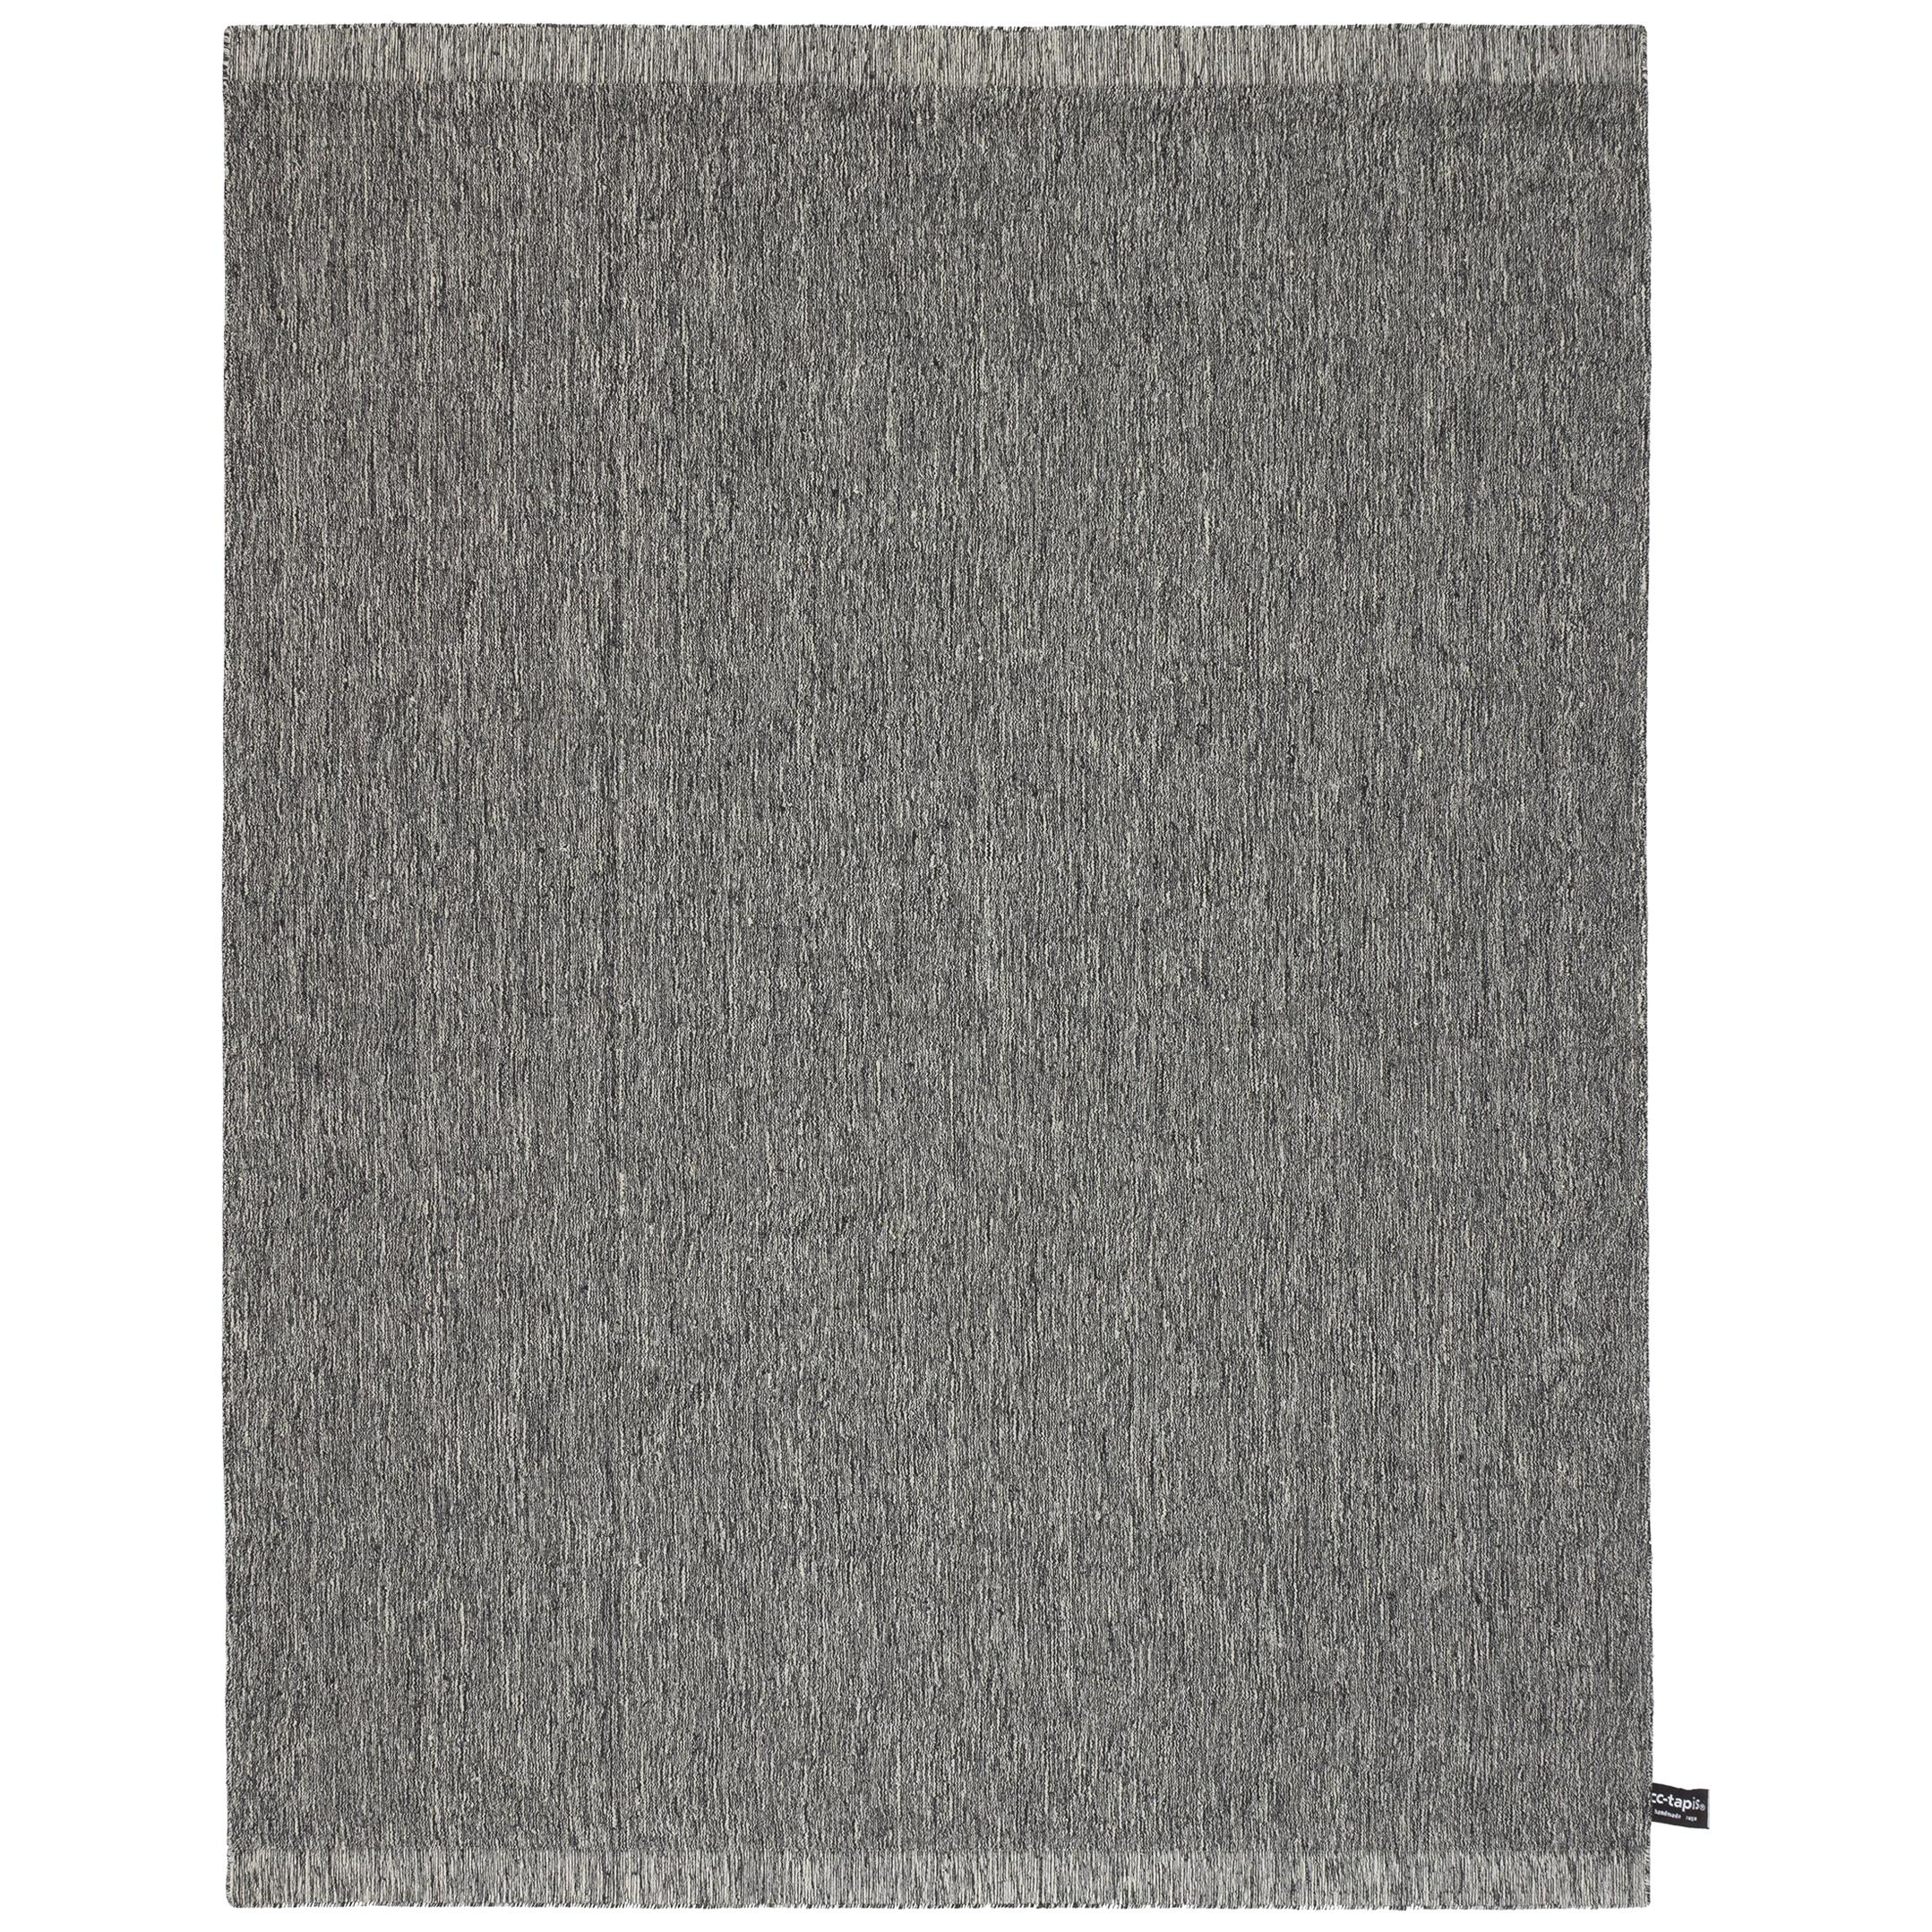 Knit Rug by CC-Tapis